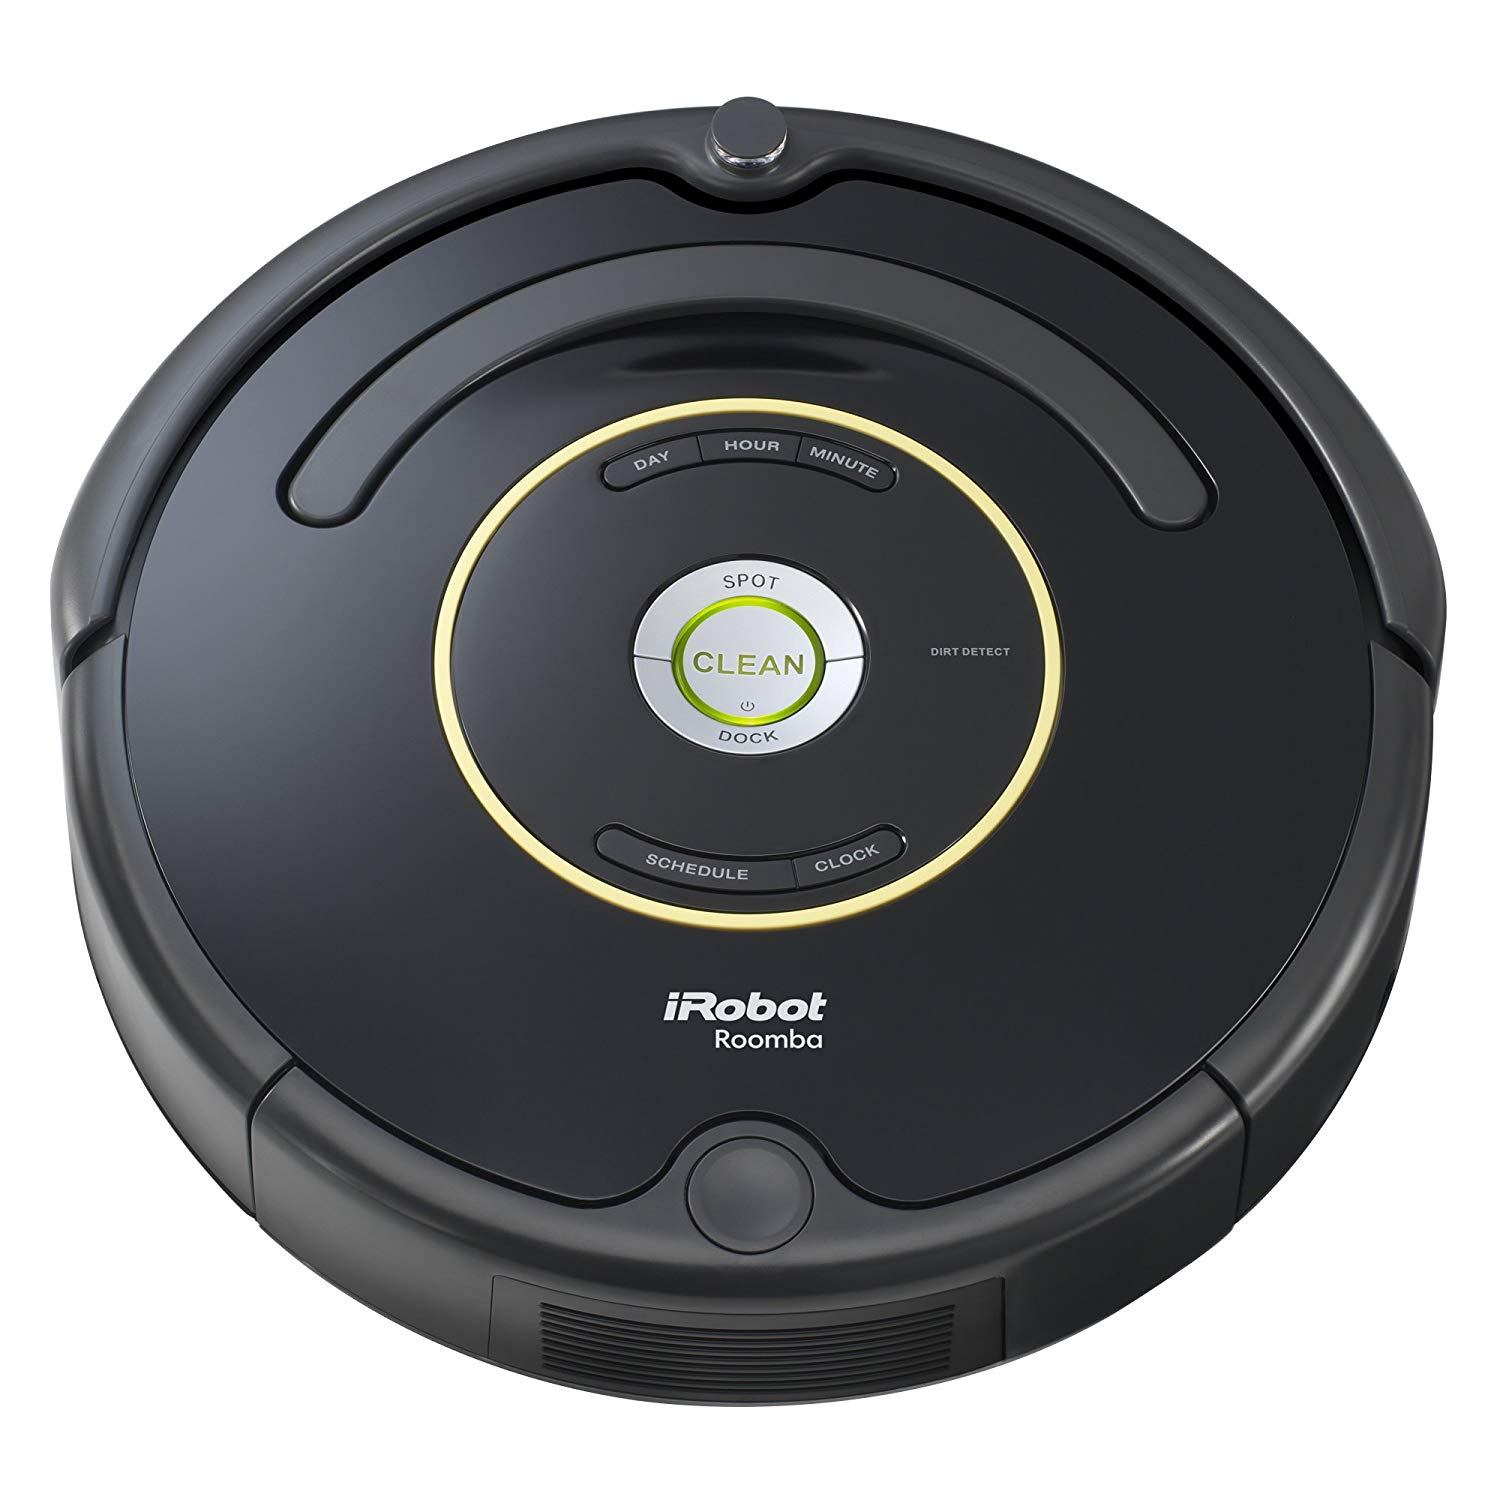 Best Robot Vacuums 2020.Best Robot Vacuum For Pet Hair Updated 2020 Reviews Guides